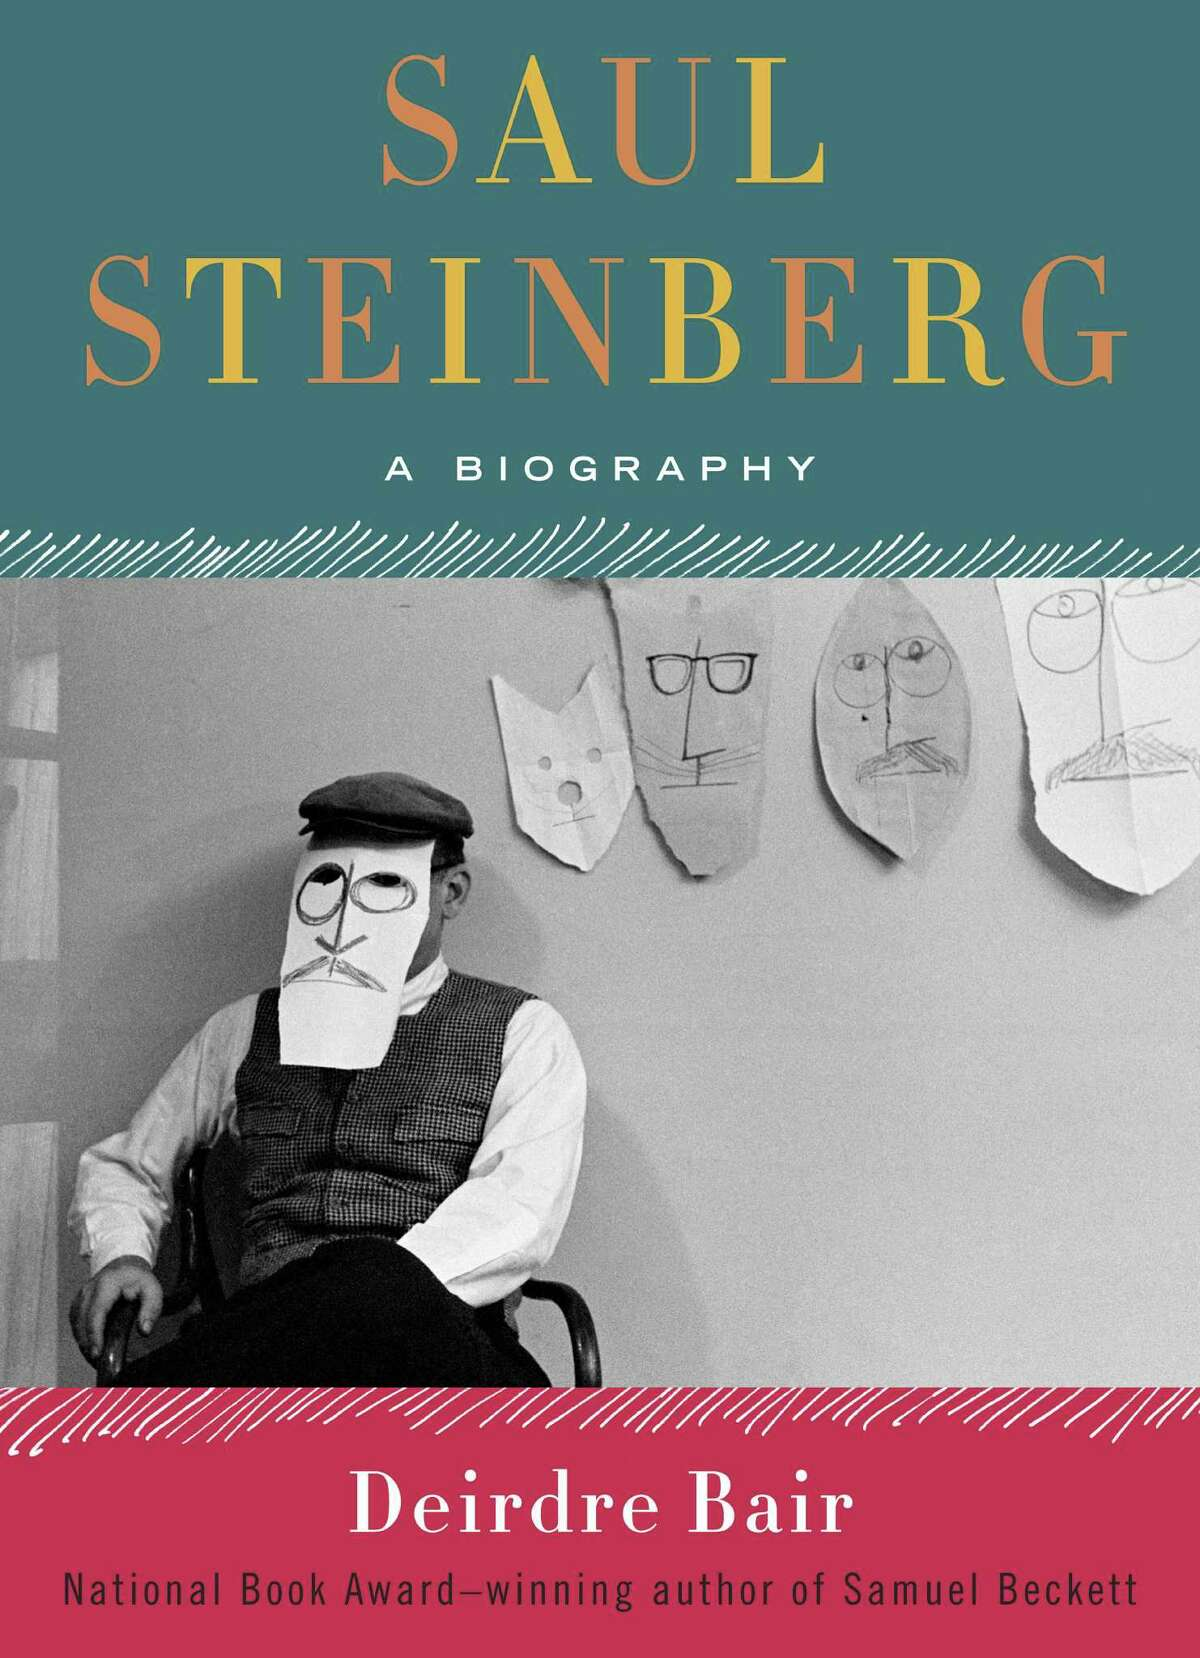 Deirdre Bair's new biography of Saul Steinberg has been named one of the top 100 books of 2012 by the New York Times.